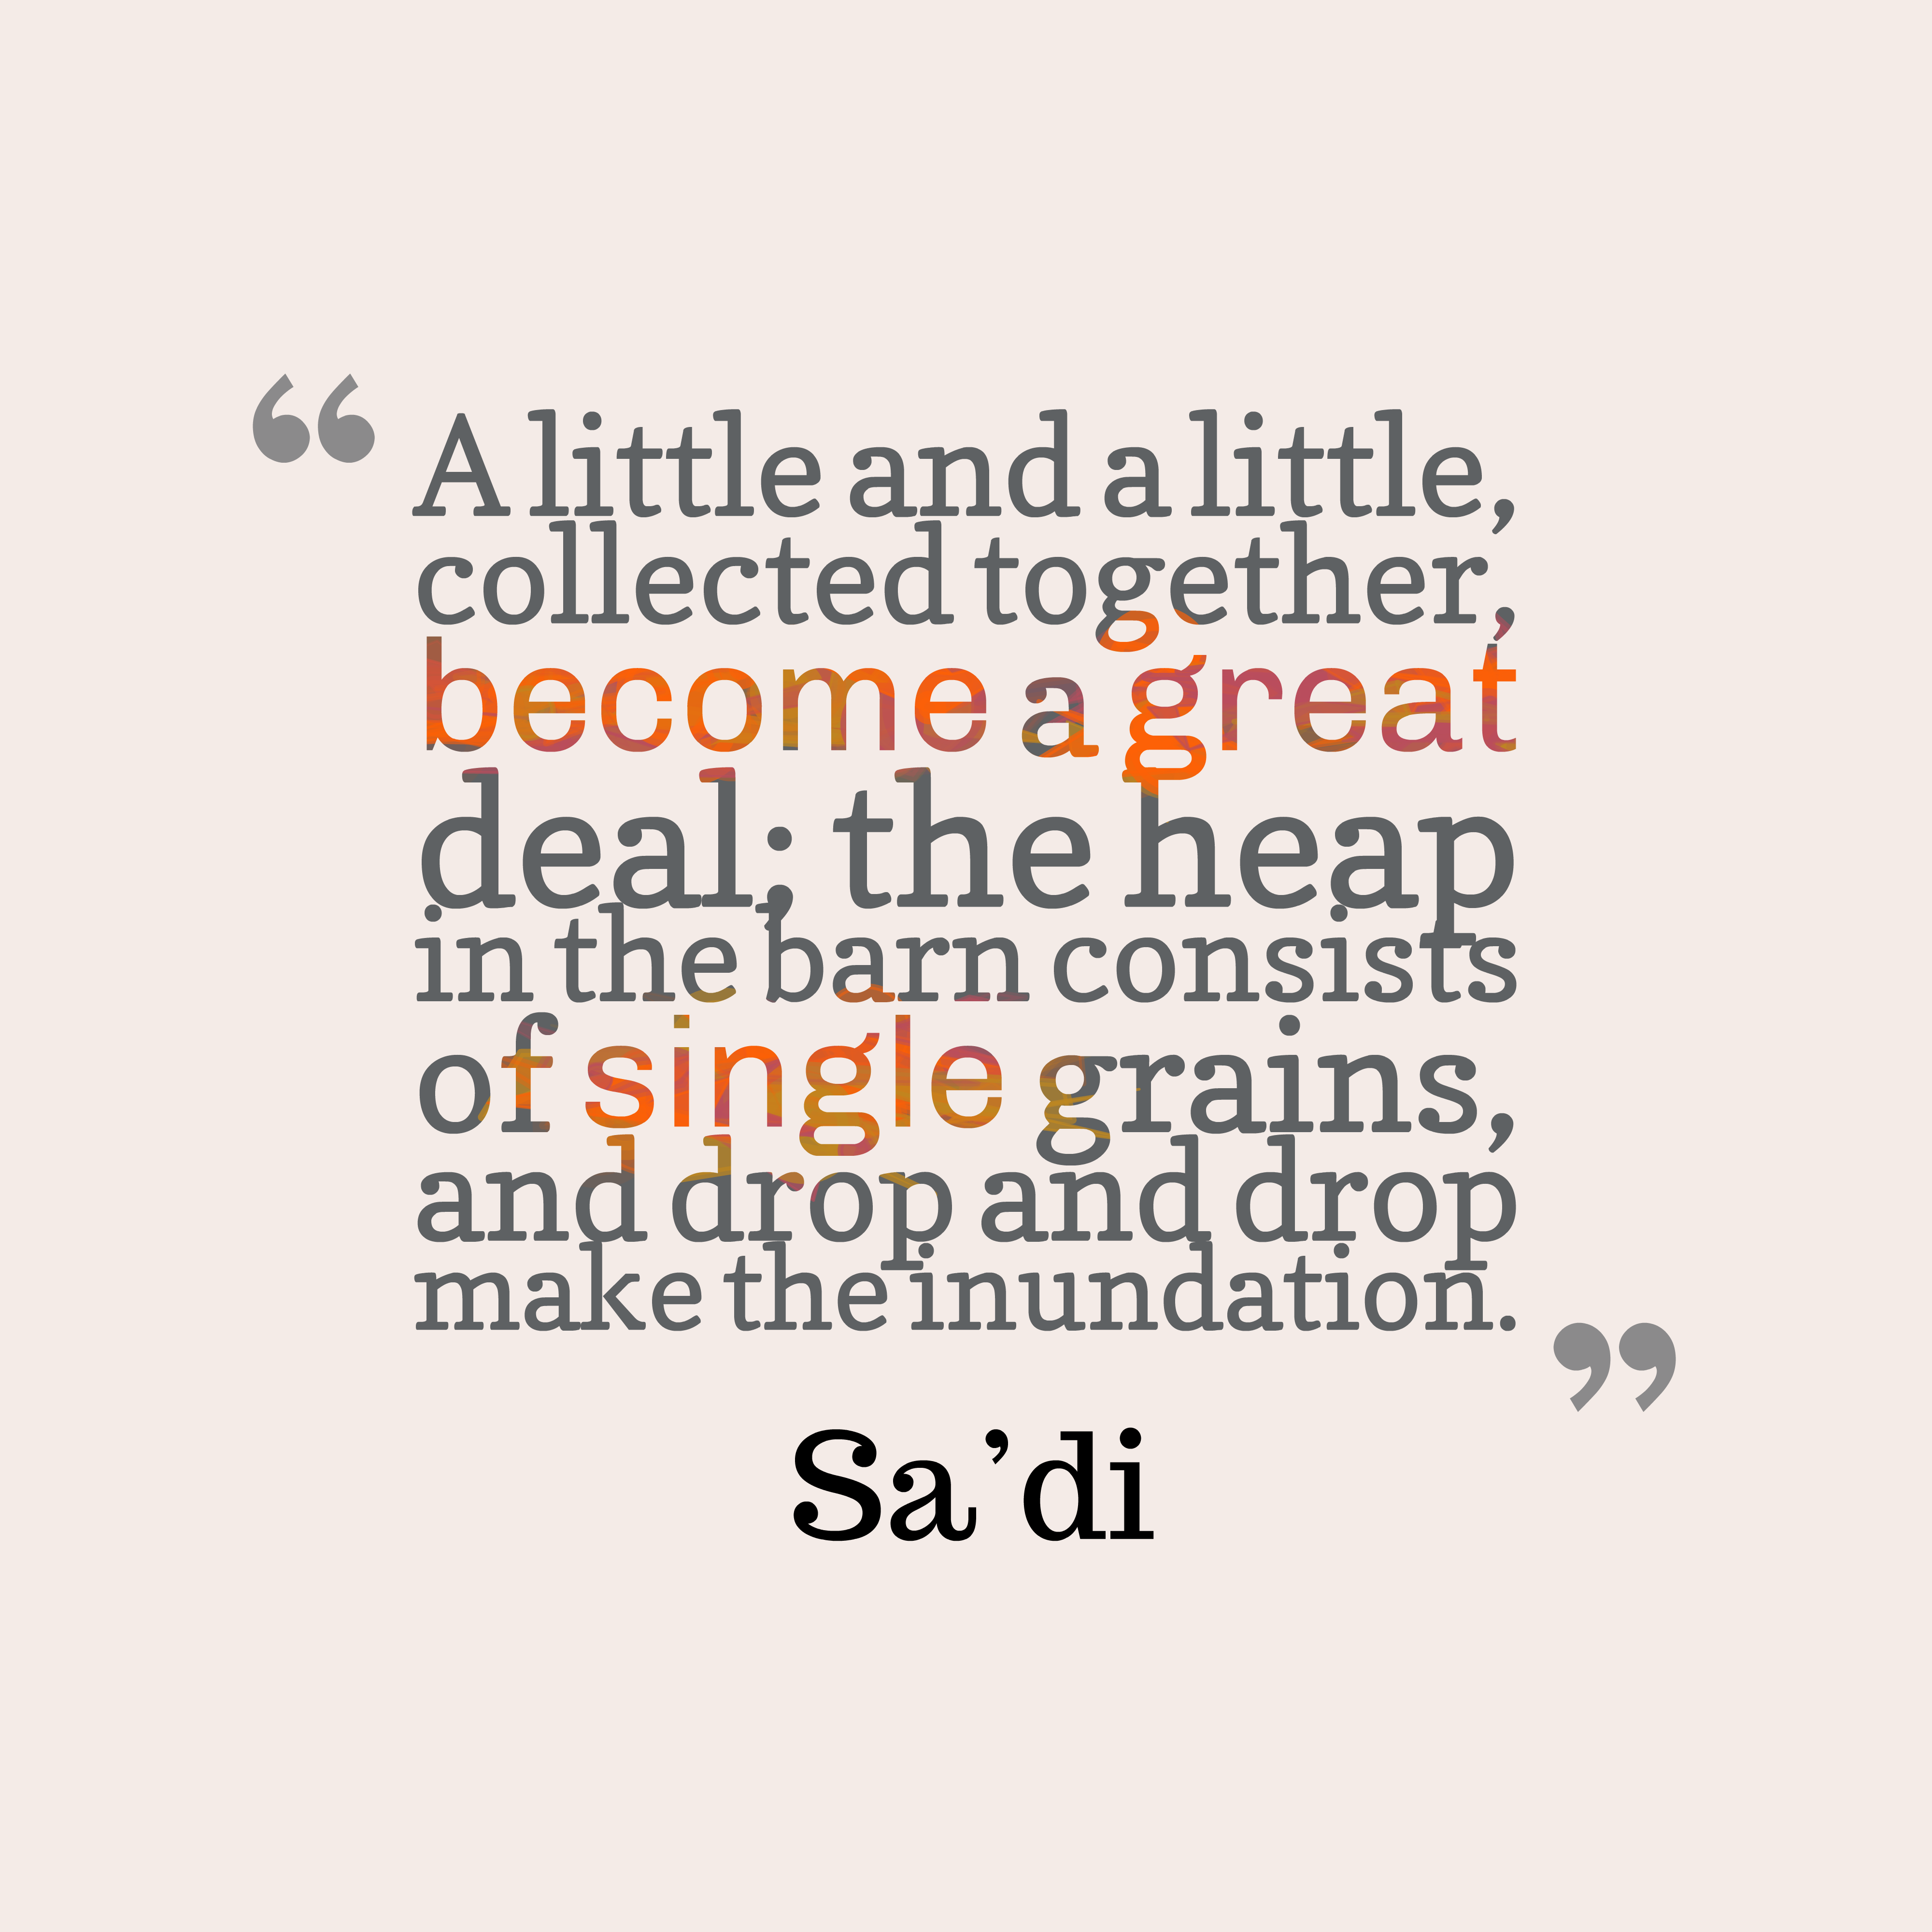 Quotes image of A little and a little, collected together, become a great deal; the heap in the barn consists of single grains, and drop and drop make the inundation.